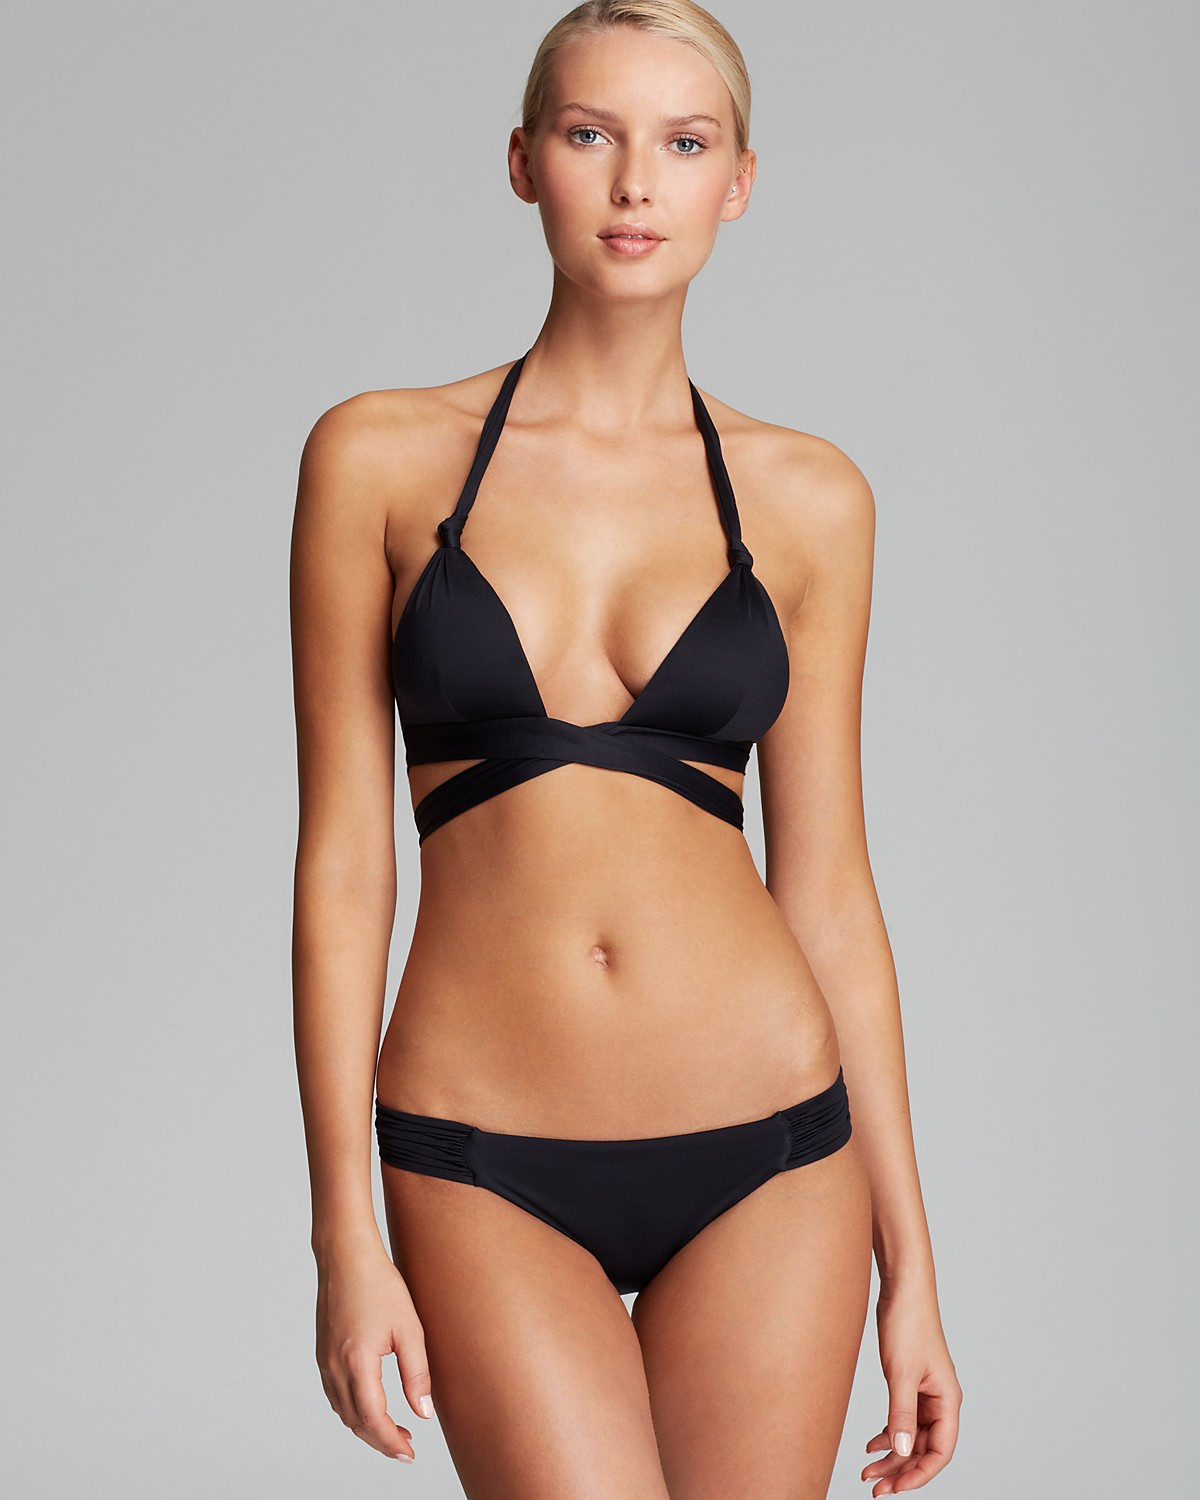 Vitamin a sirena wrap bikini top & antibes ruched hipster bottom